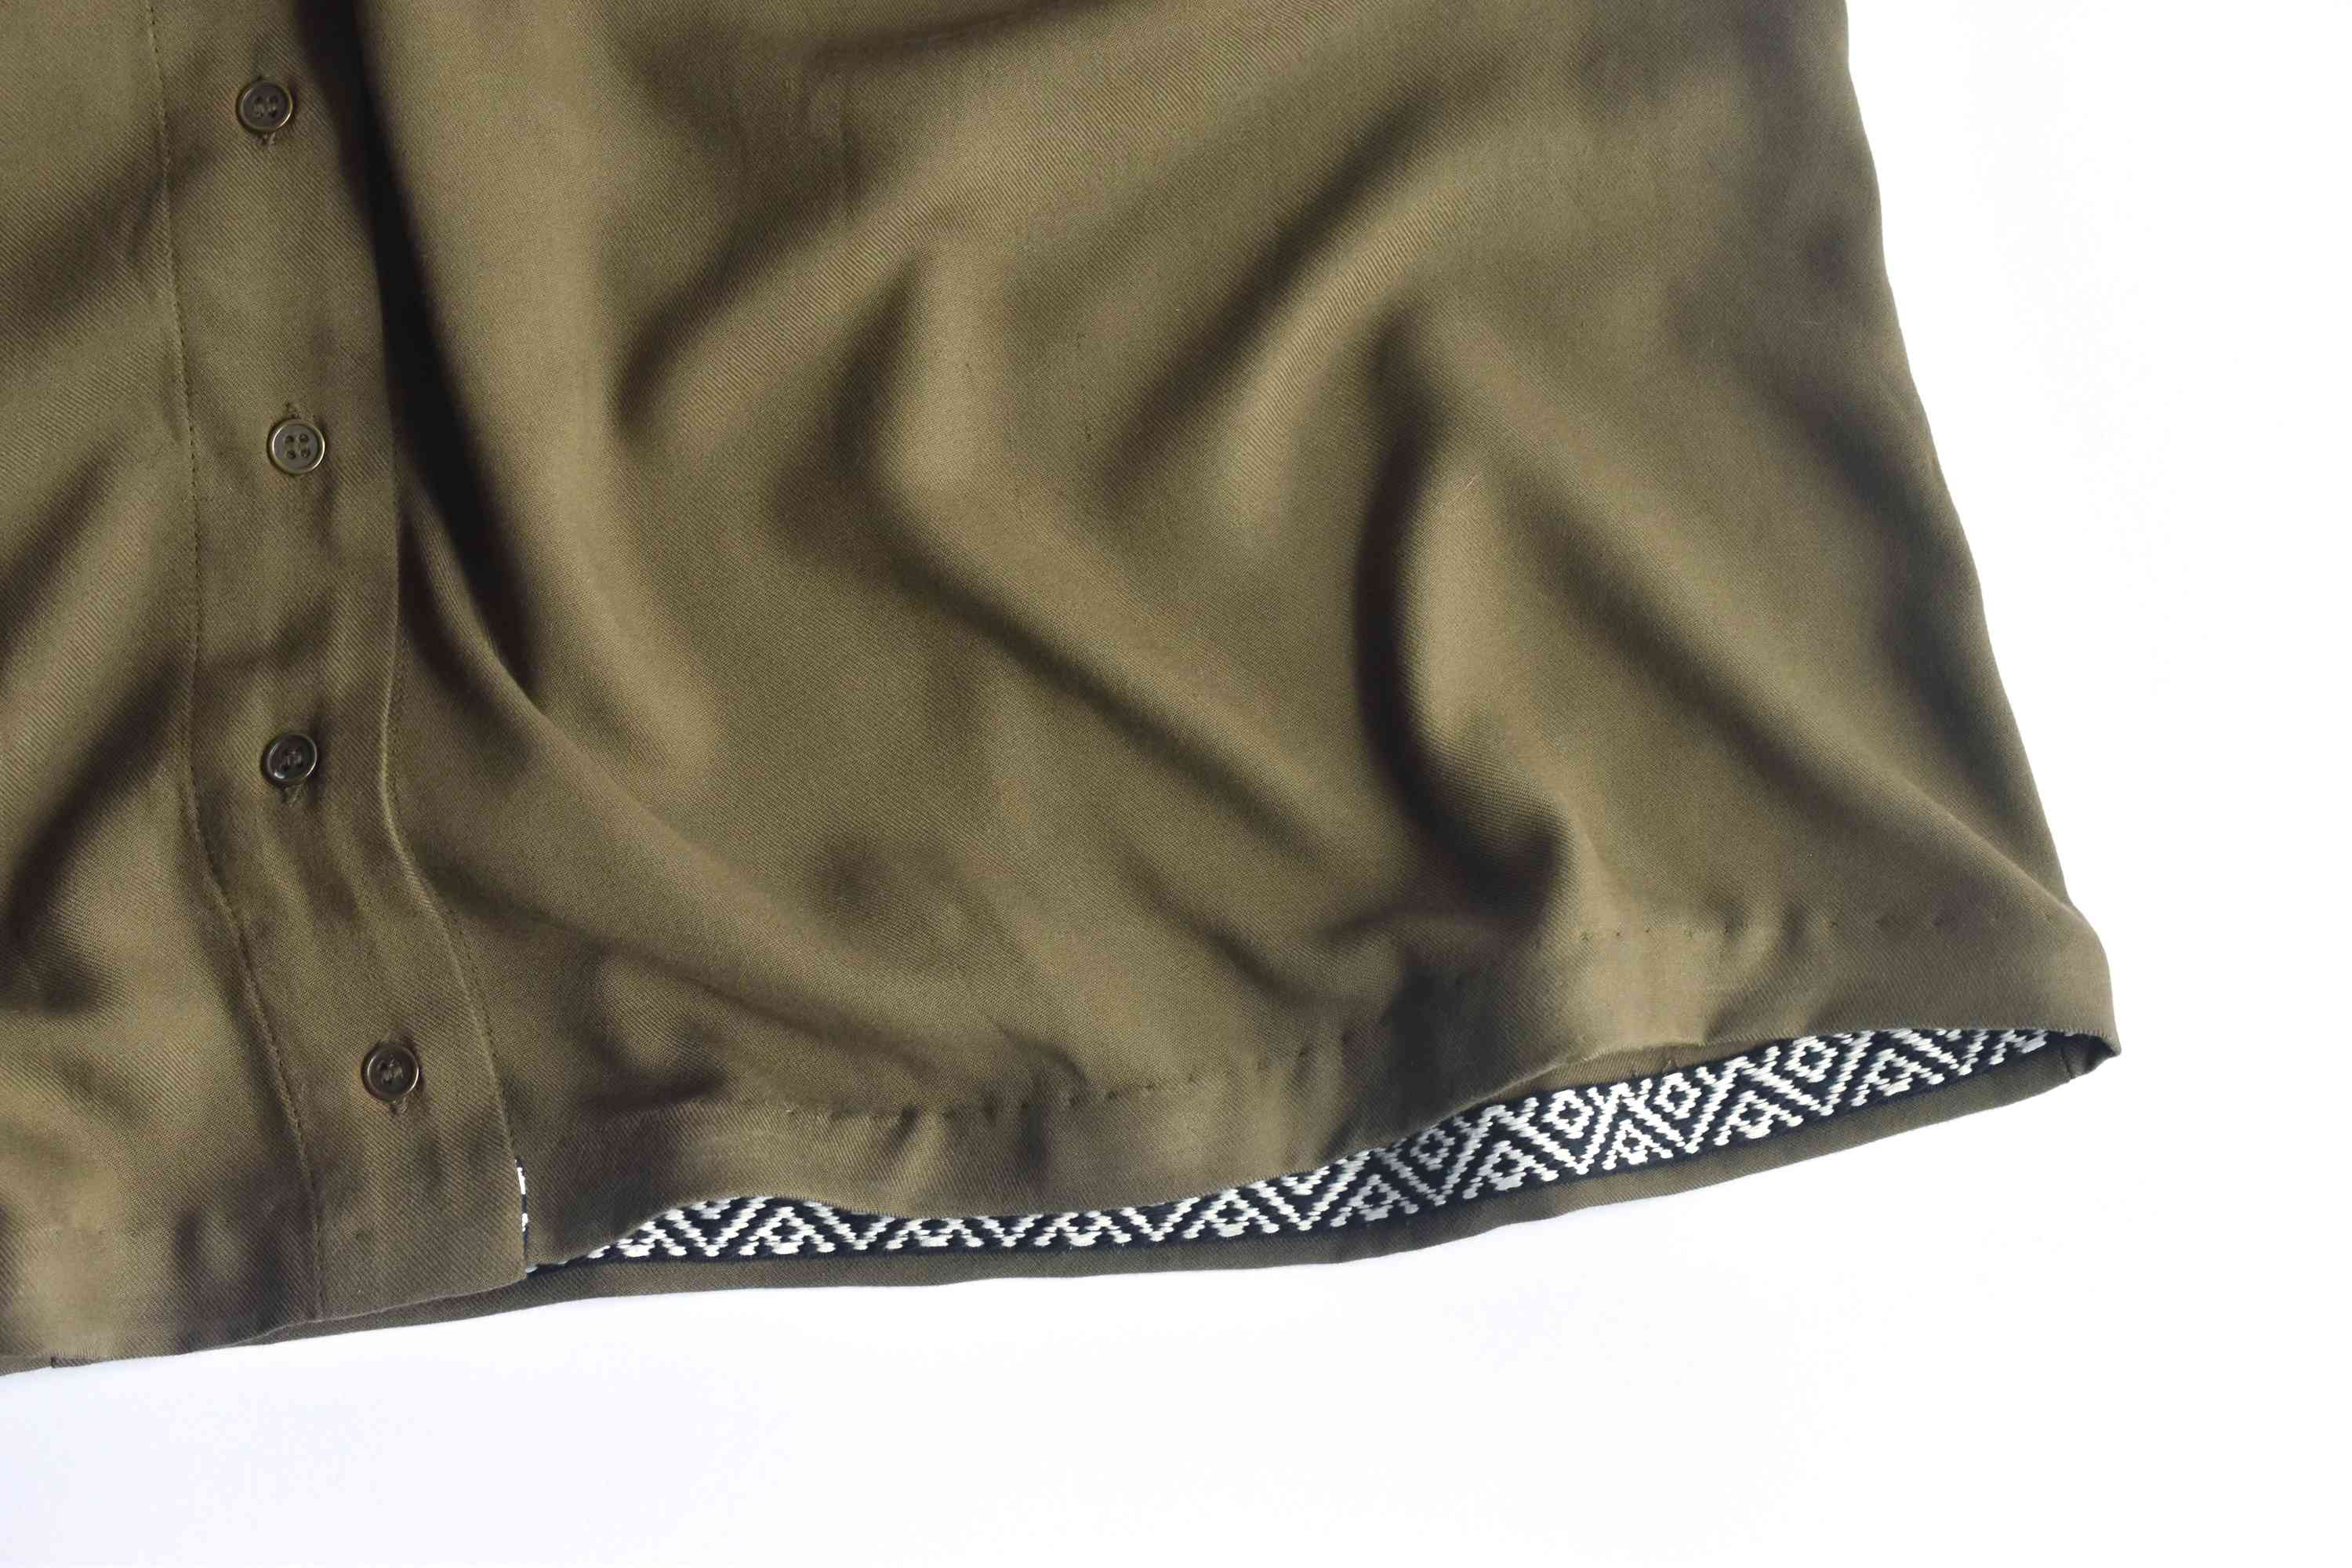 A skirt hemmed with ribbon